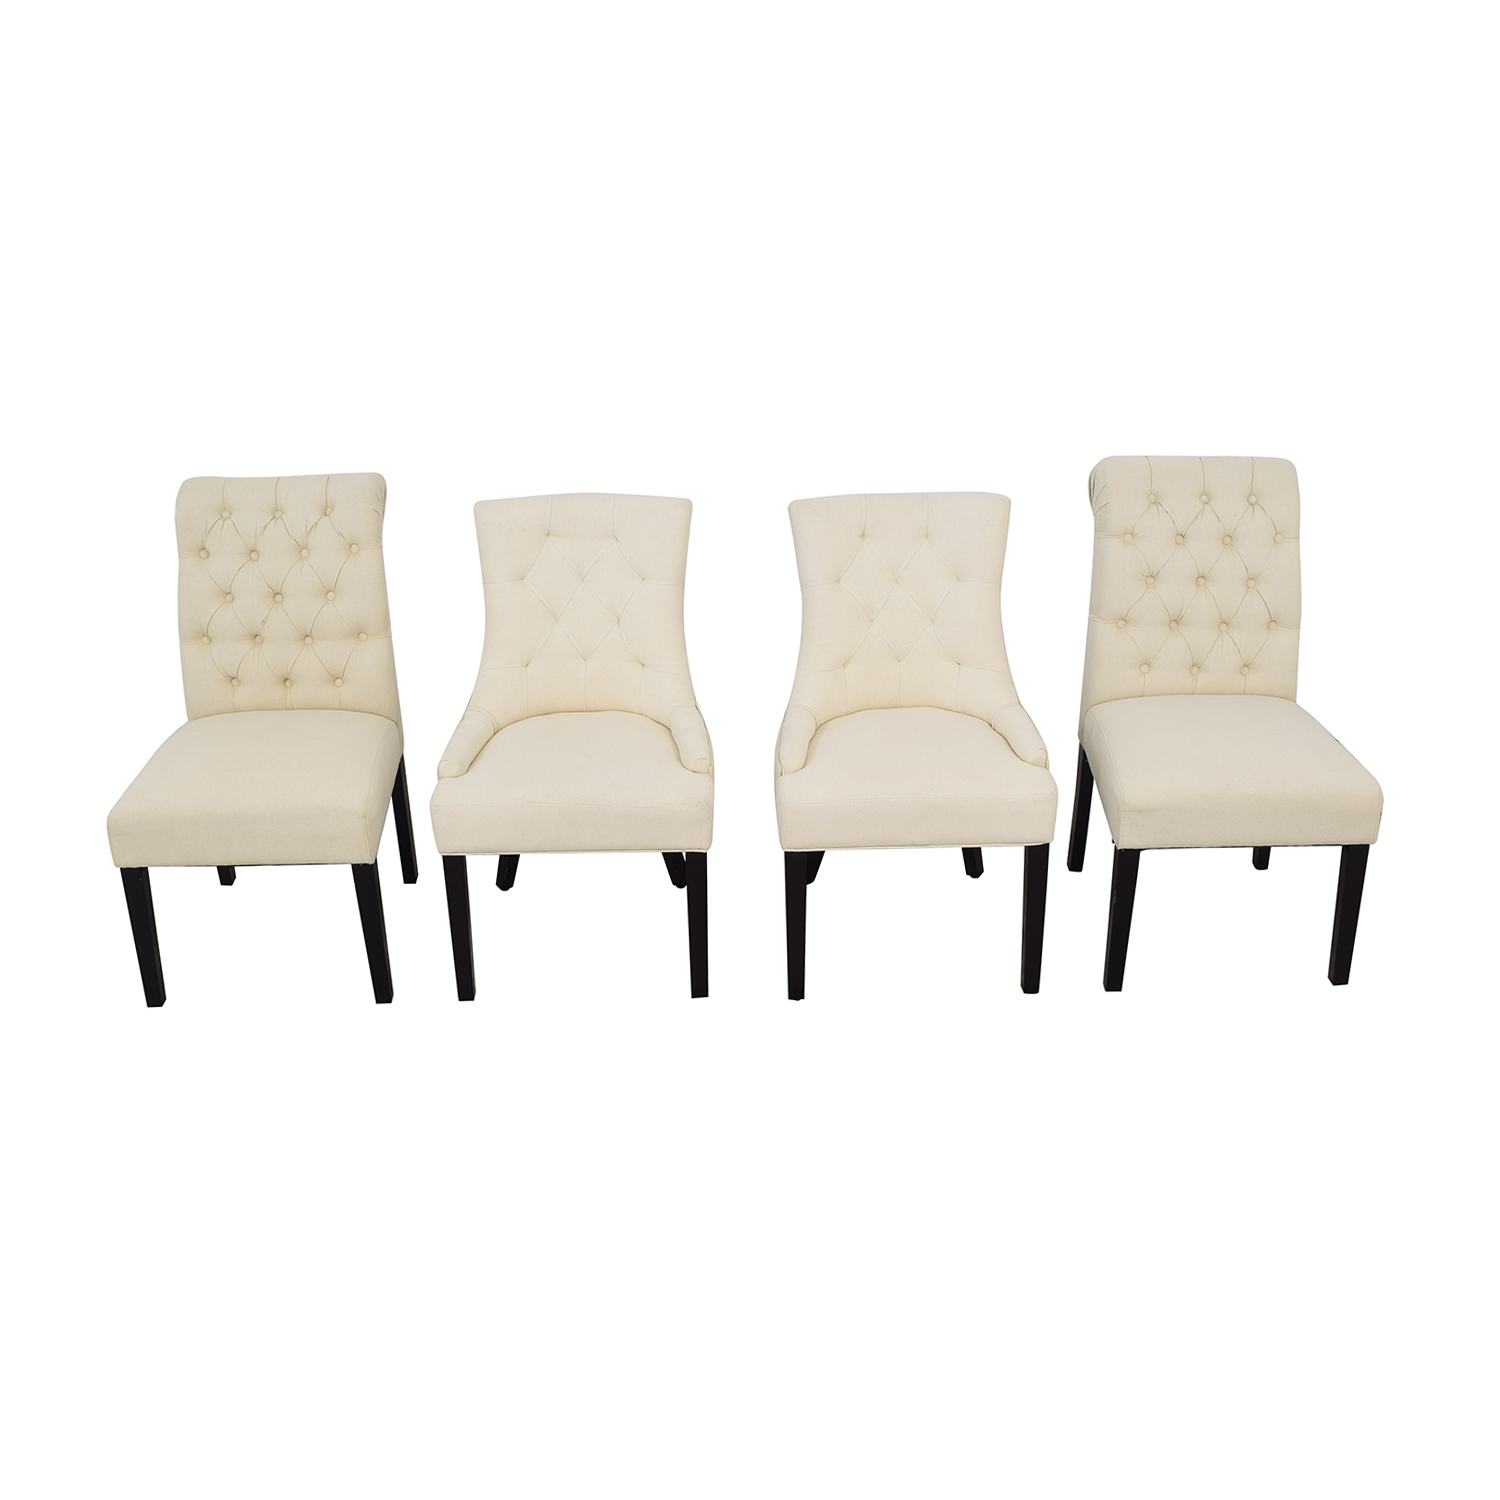 Upholstered Dining Chairs ma